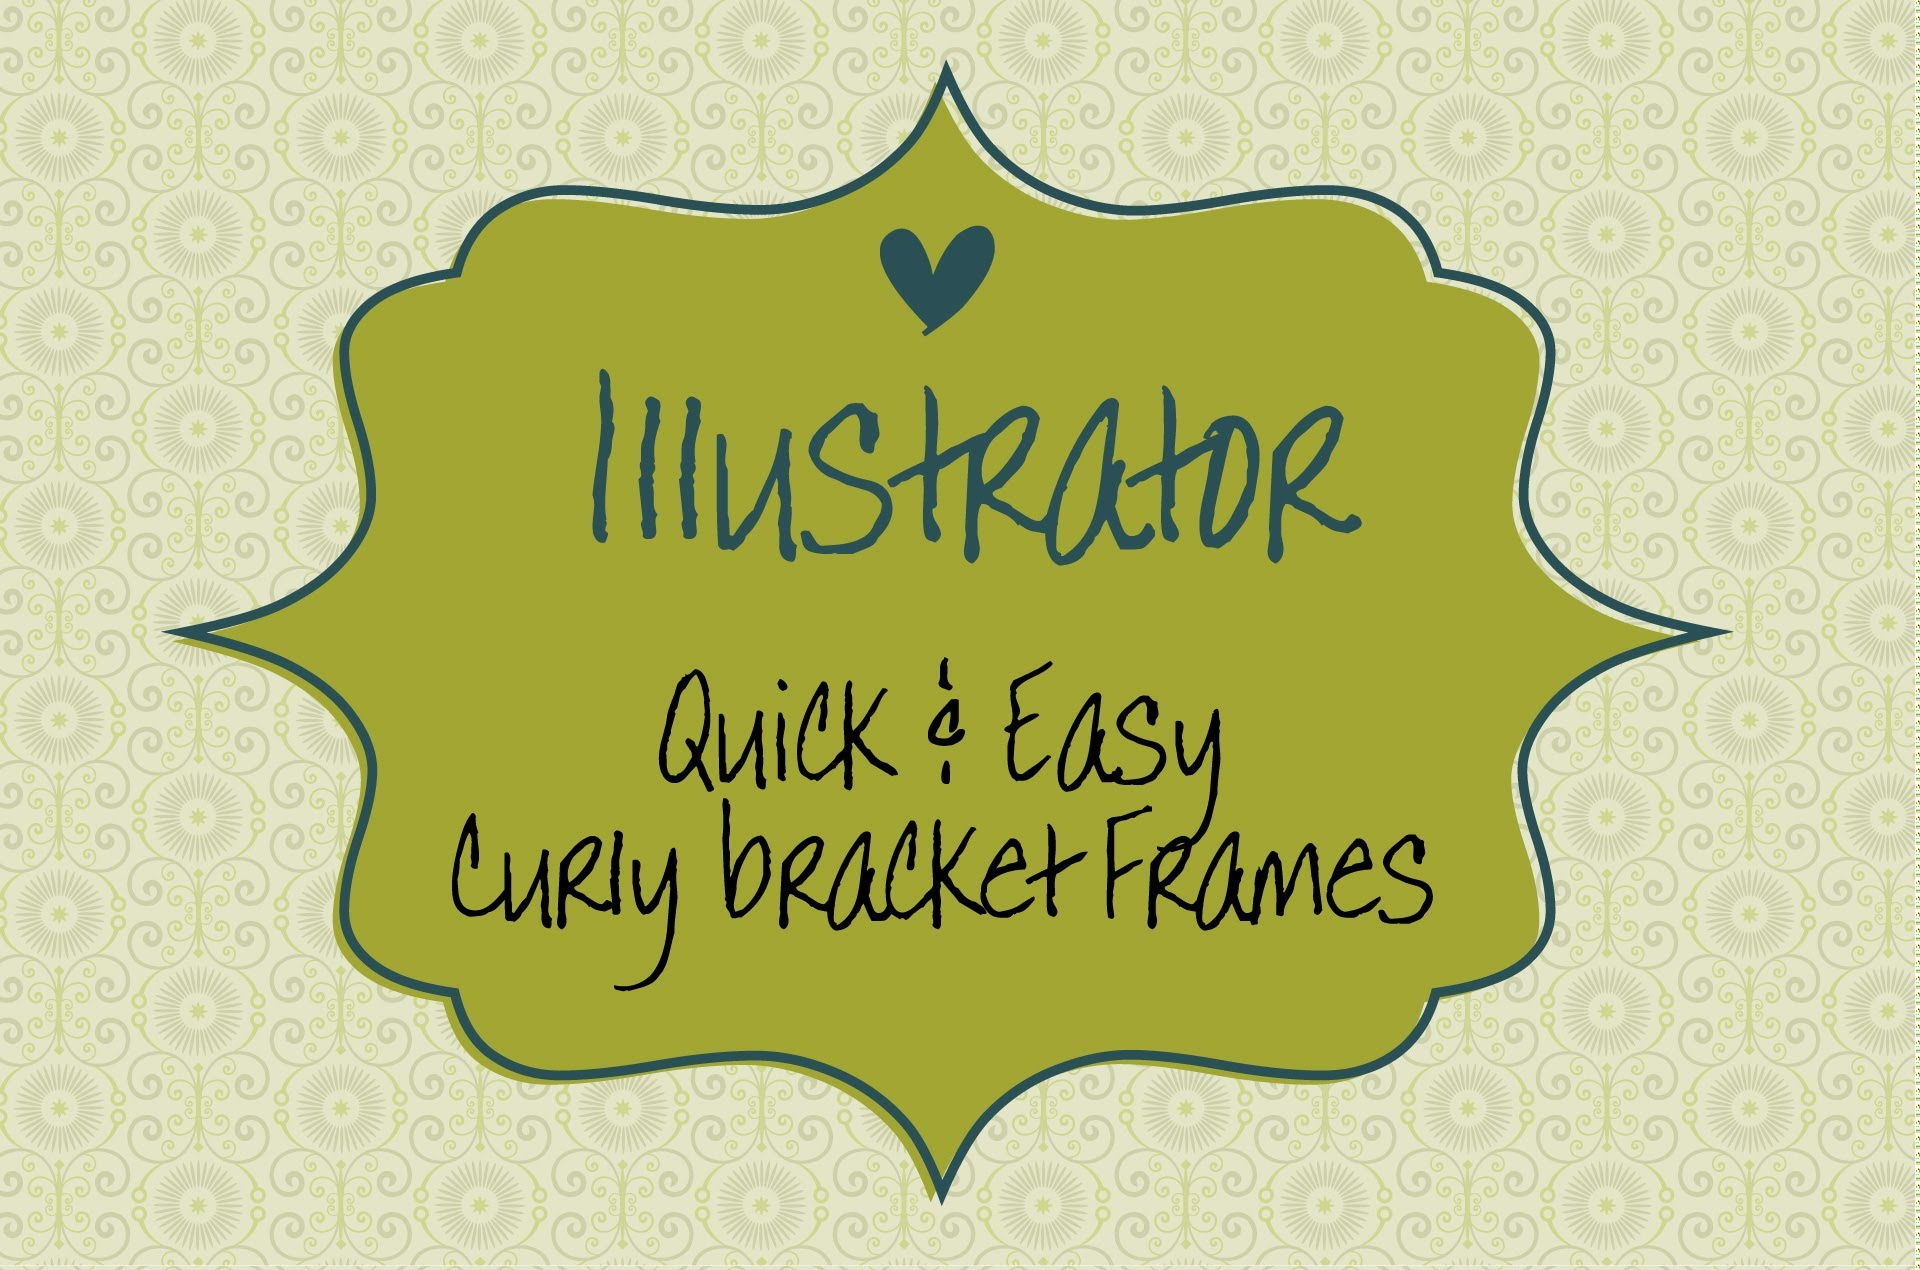 1920x1270 Create Curly Bracket Frame Shapes In Illustrator Without Using The